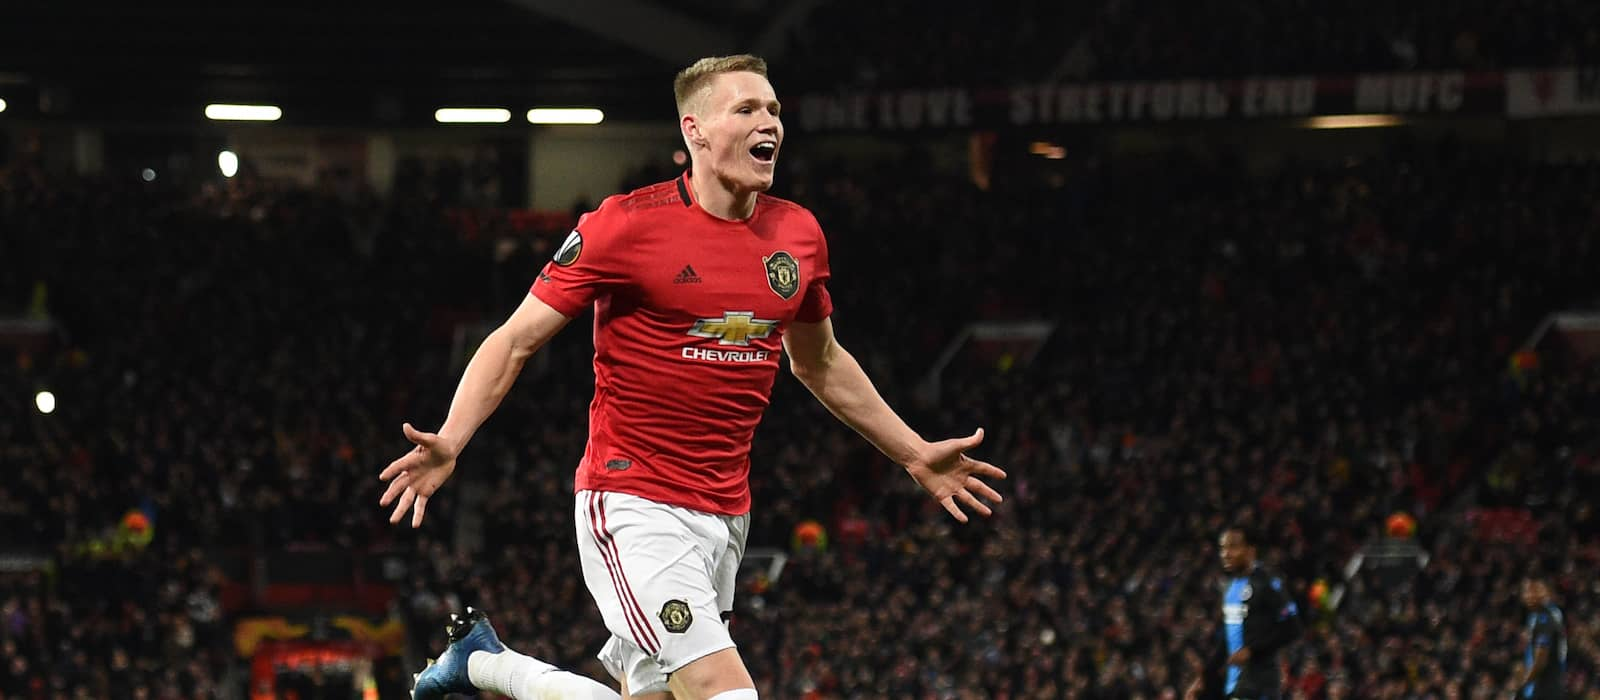 Manchester United fans react to Scott McTominay contract extension